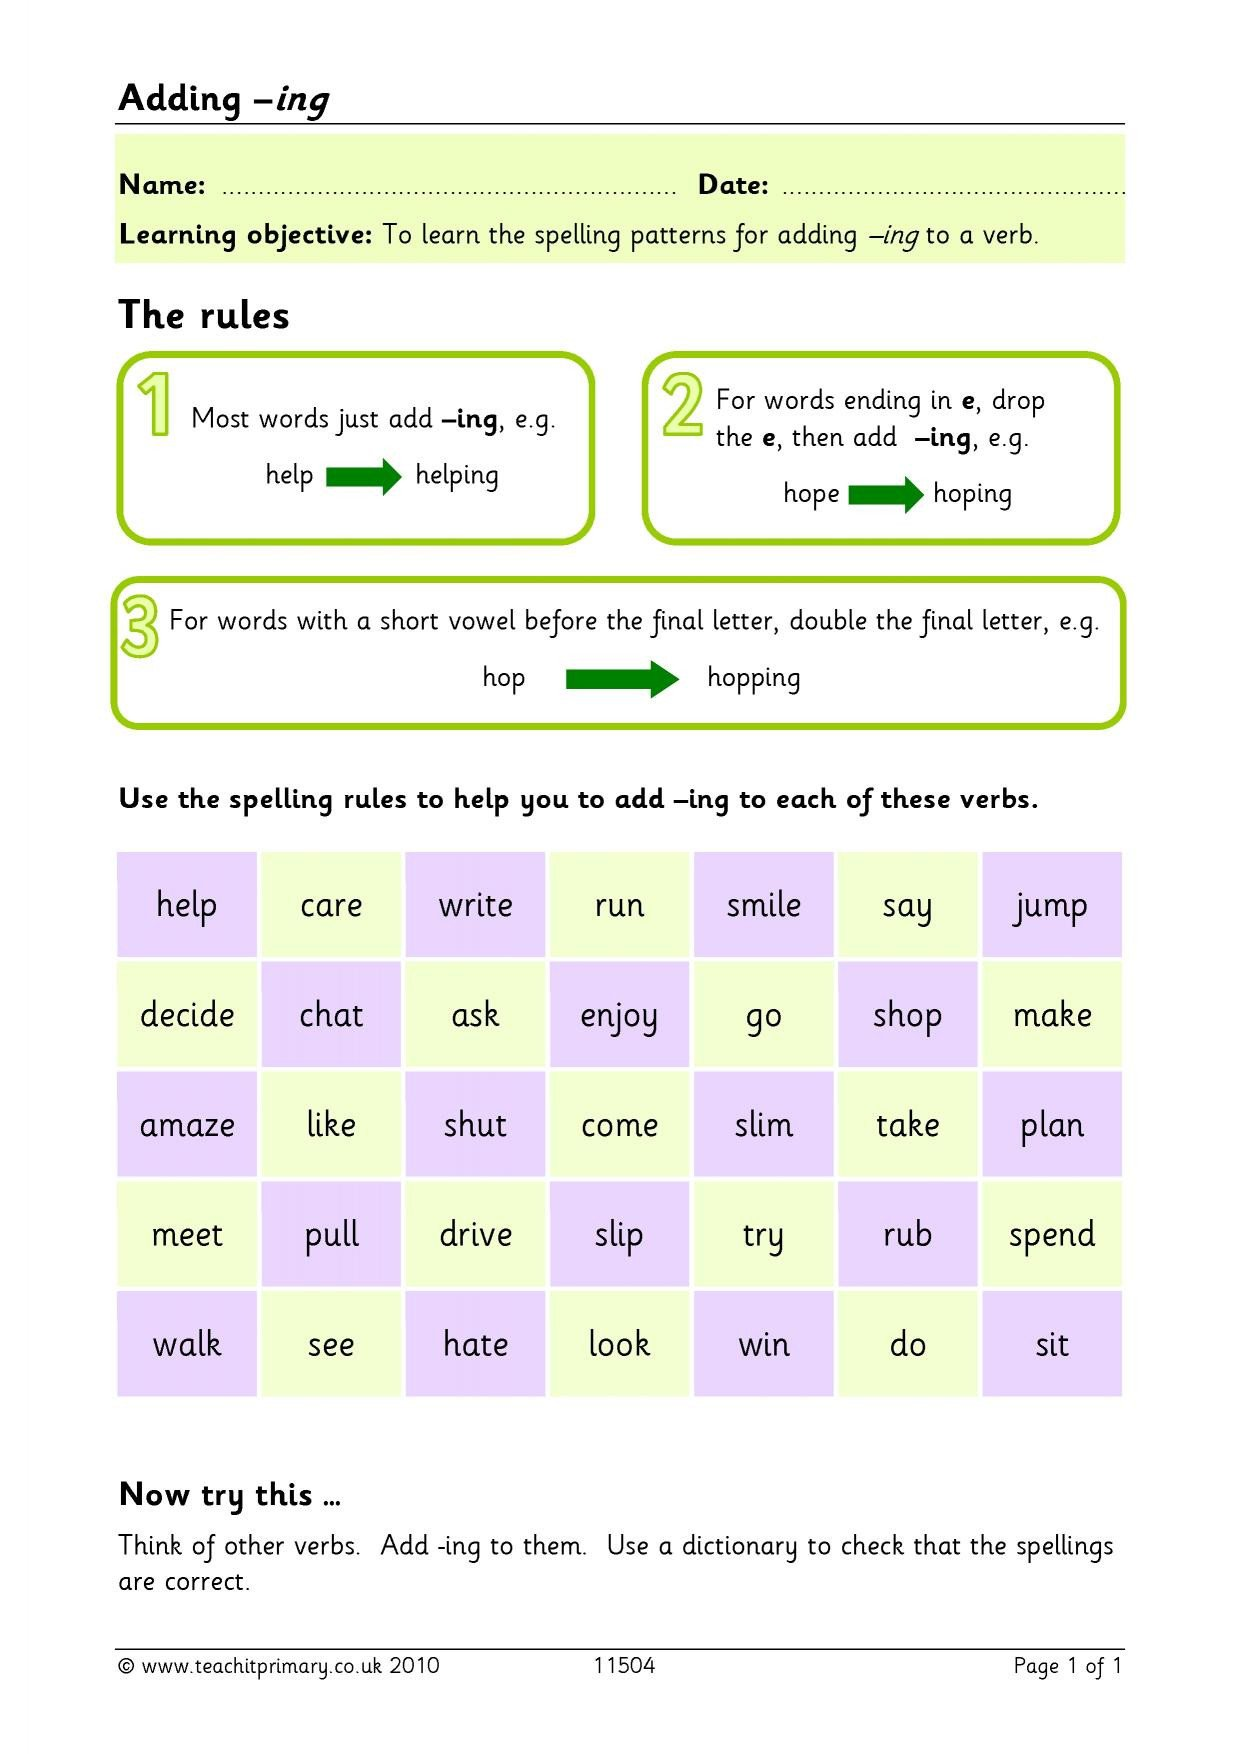 Adding Ing to Verbs Worksheet Verbs with Ing Ending Worksheets